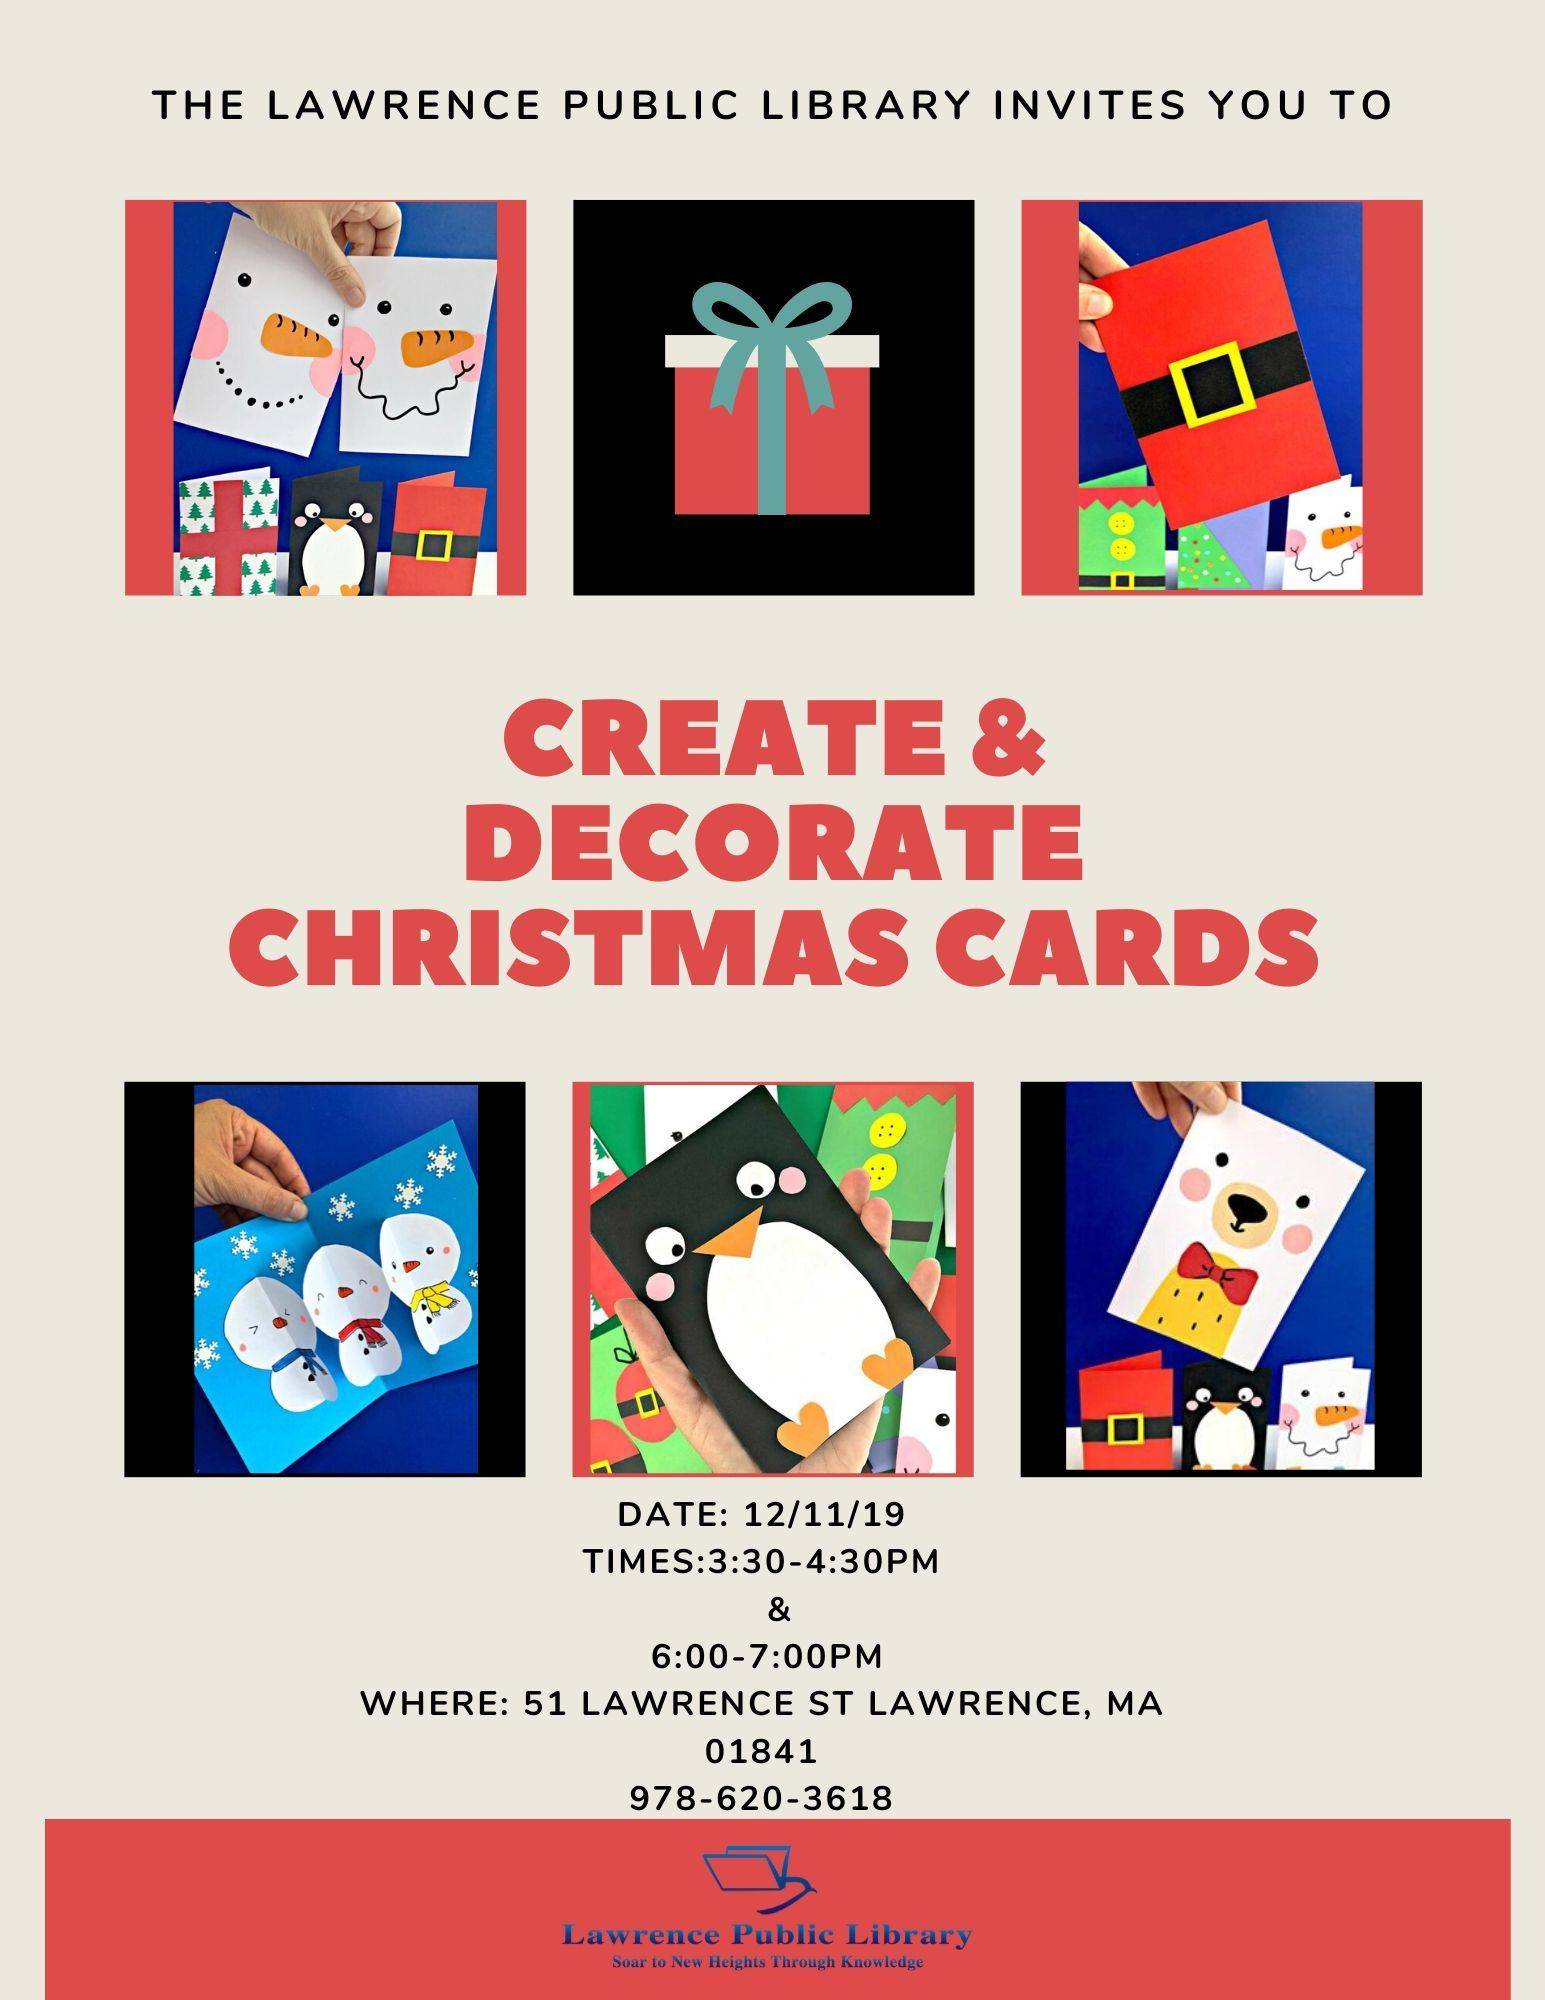 Decorate Christmas cards